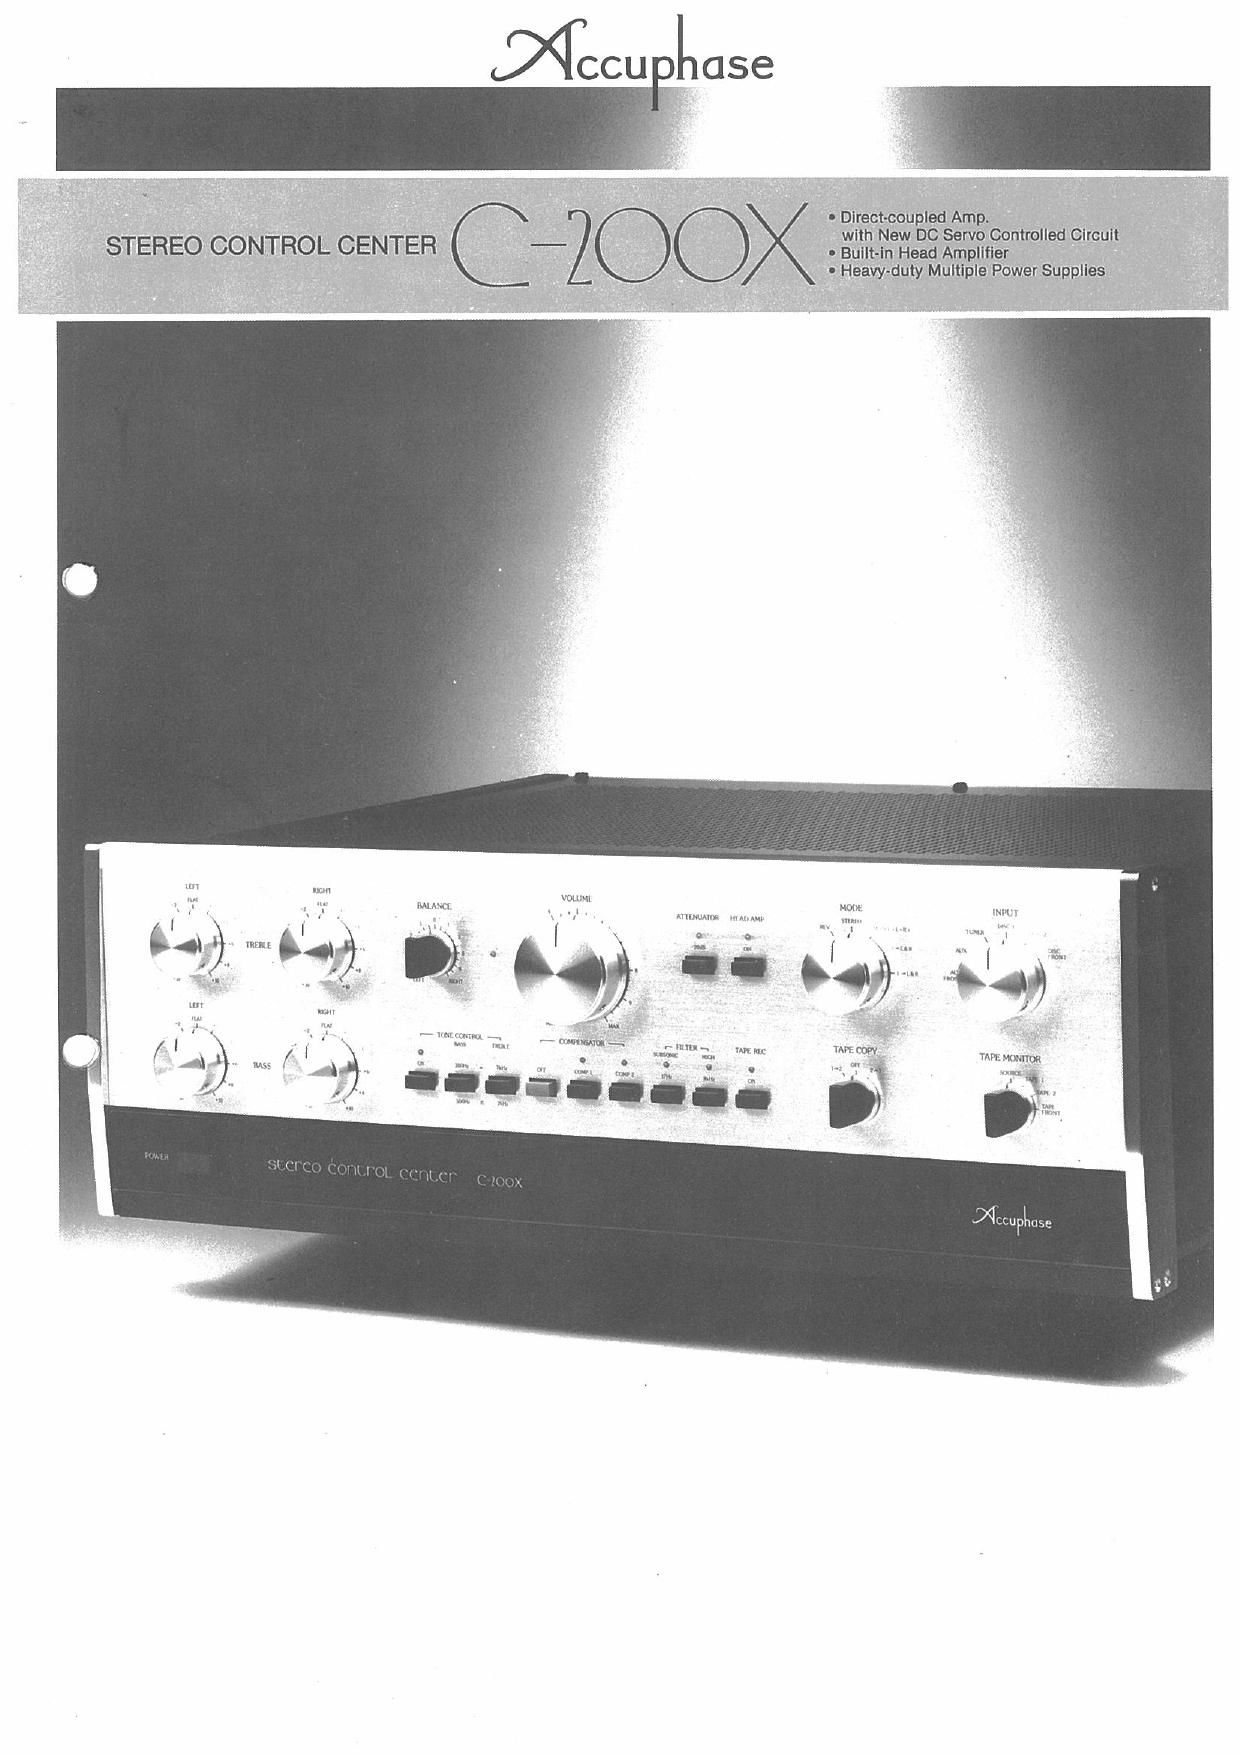 Accuphase C 200 X Brochure